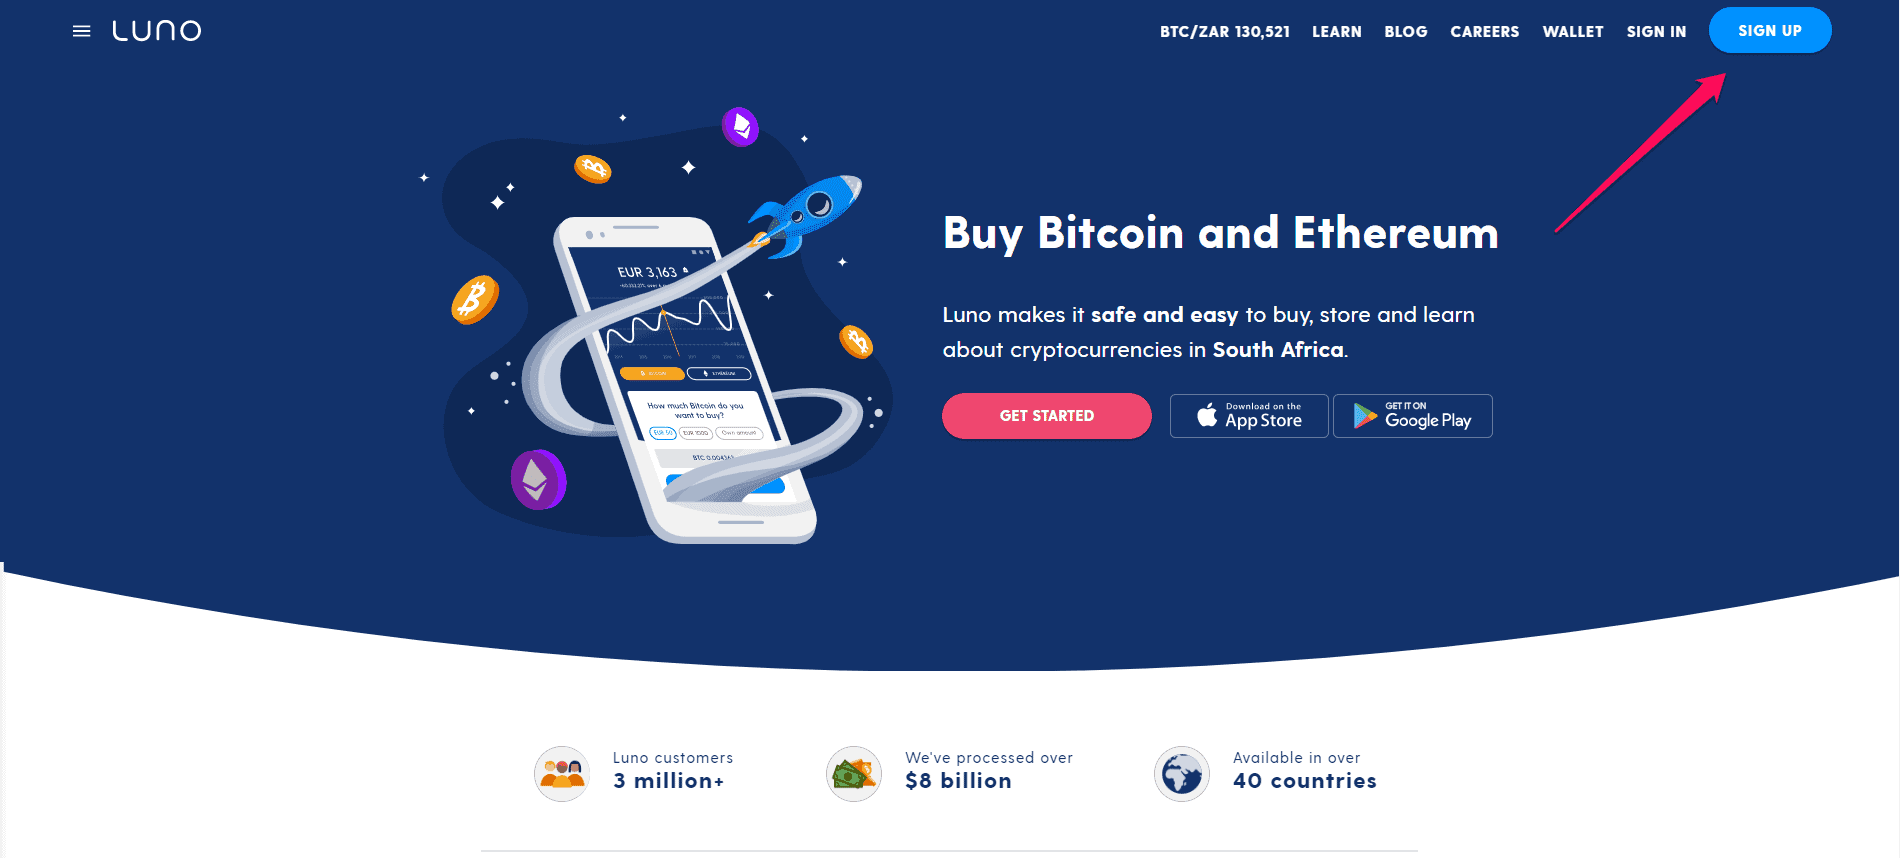 Luno Bitcoin Wallet The Only Guide You Need Open A Free Wallet